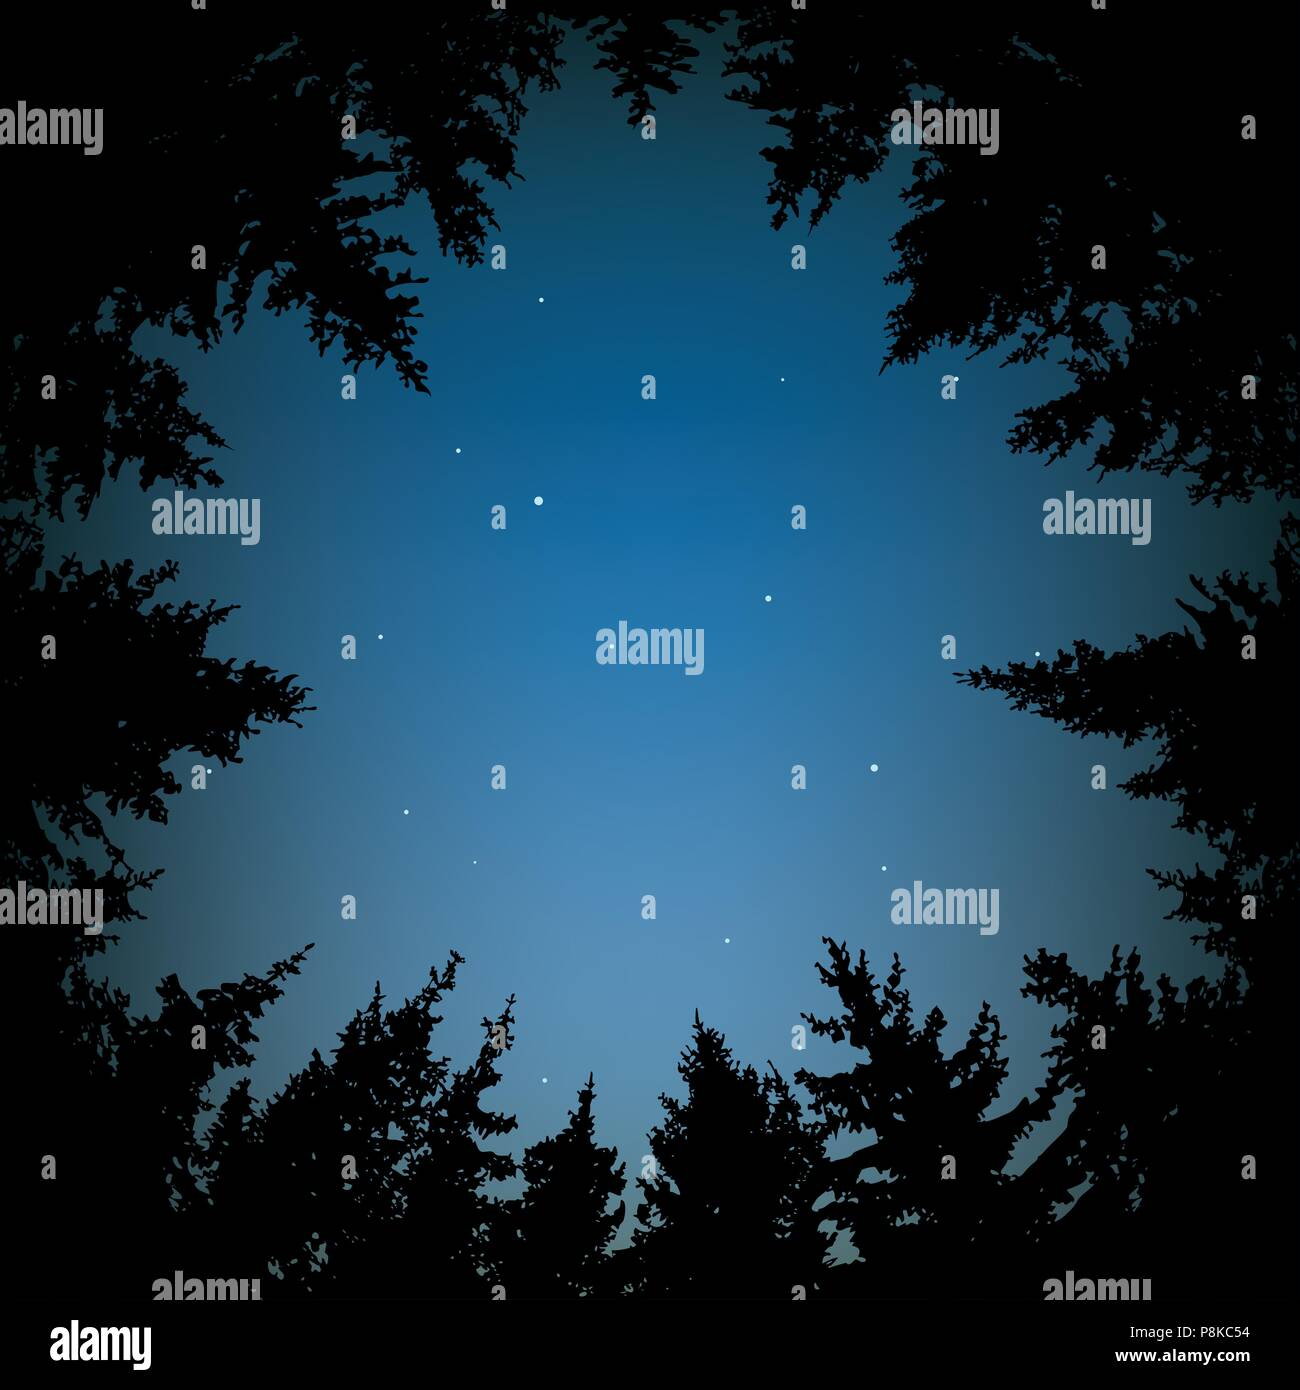 vector background of blue night sky with stars and dark forest